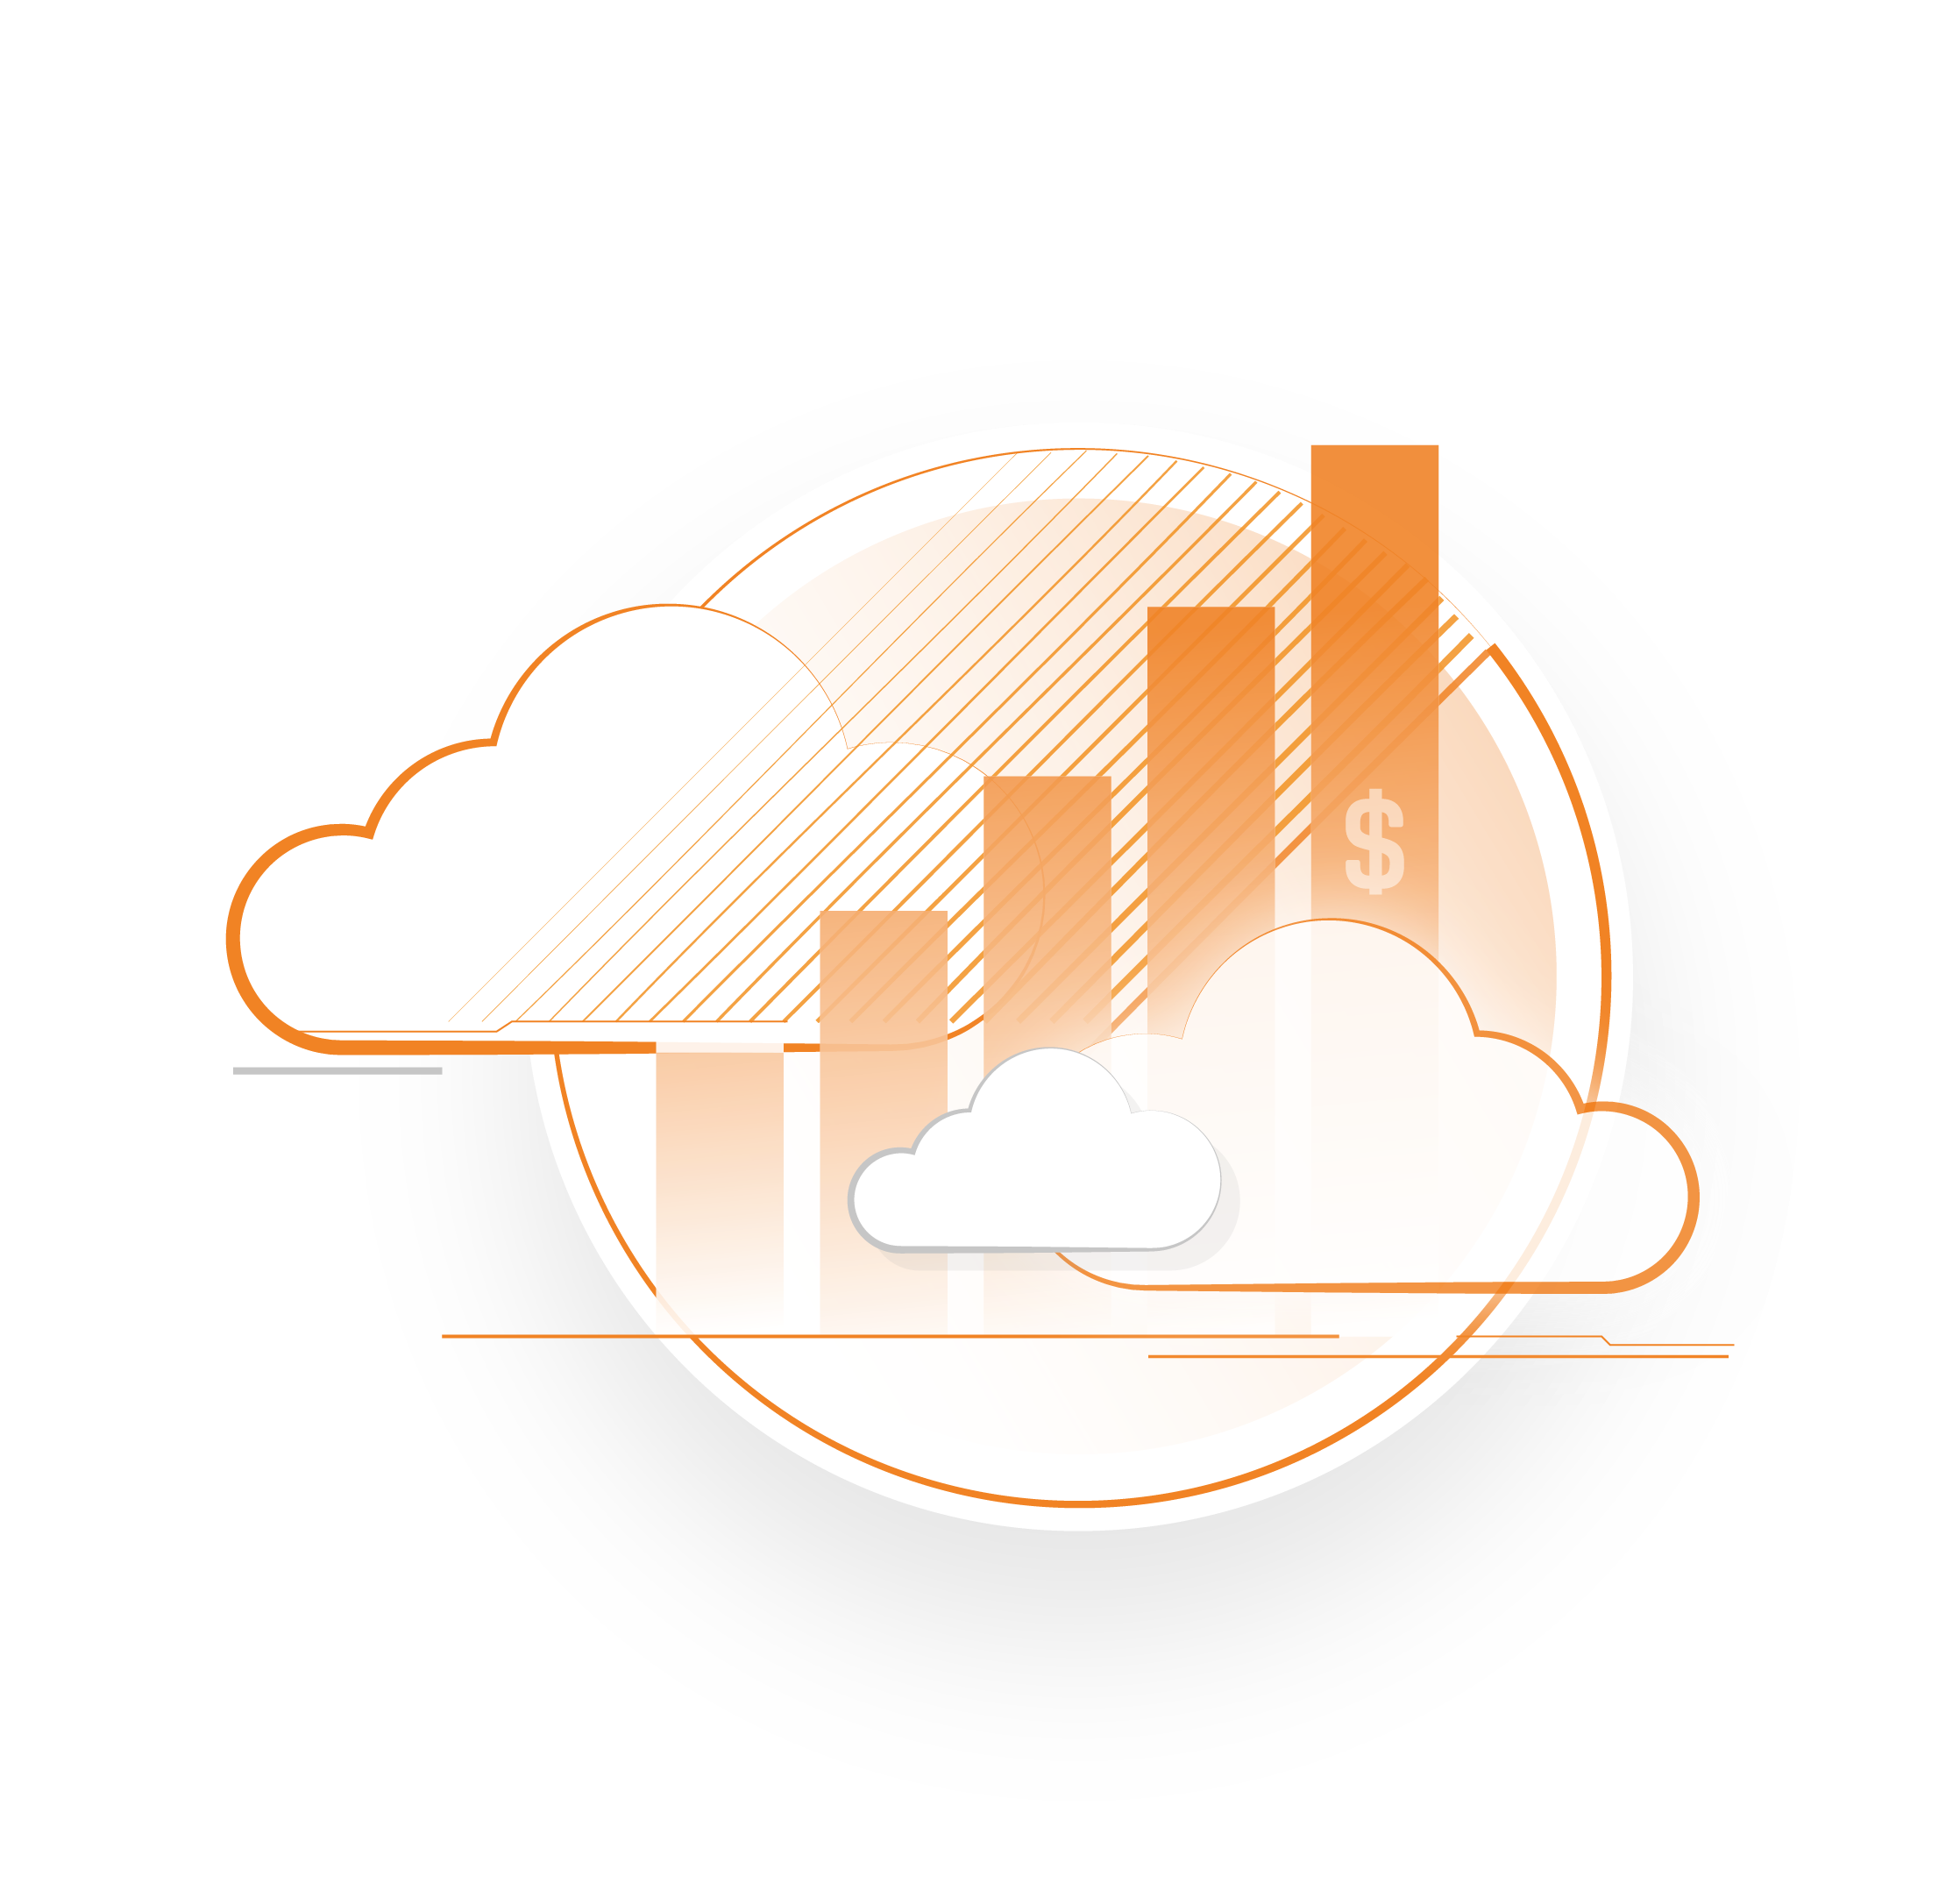 Efficiency increases with cloud solutions